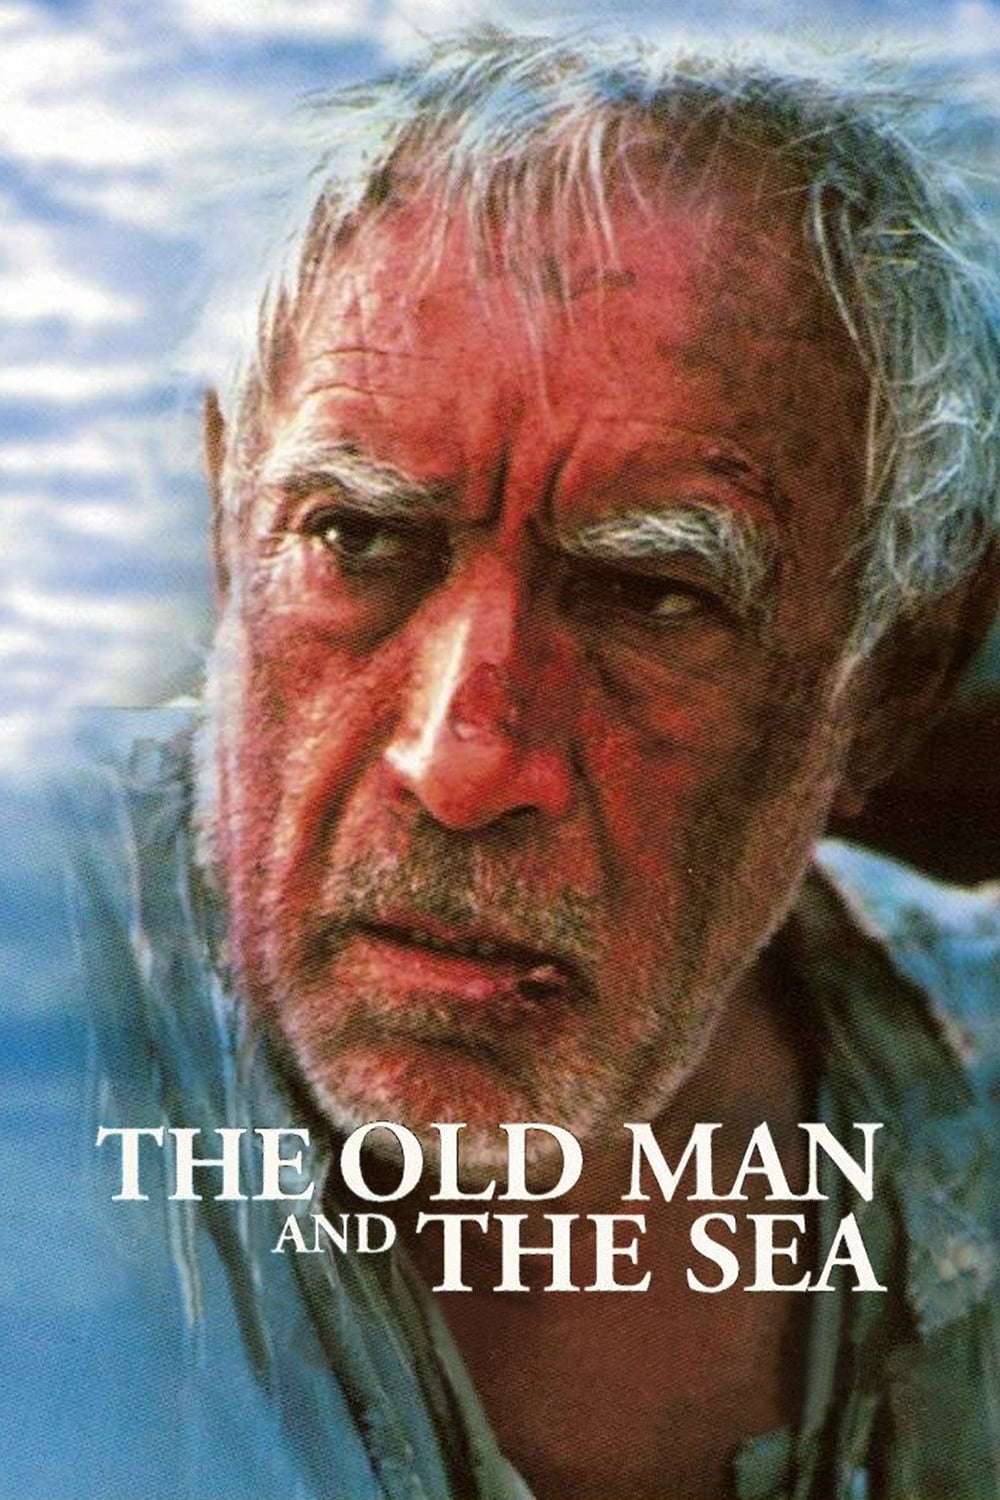 The Old Man and the Sea (1991)